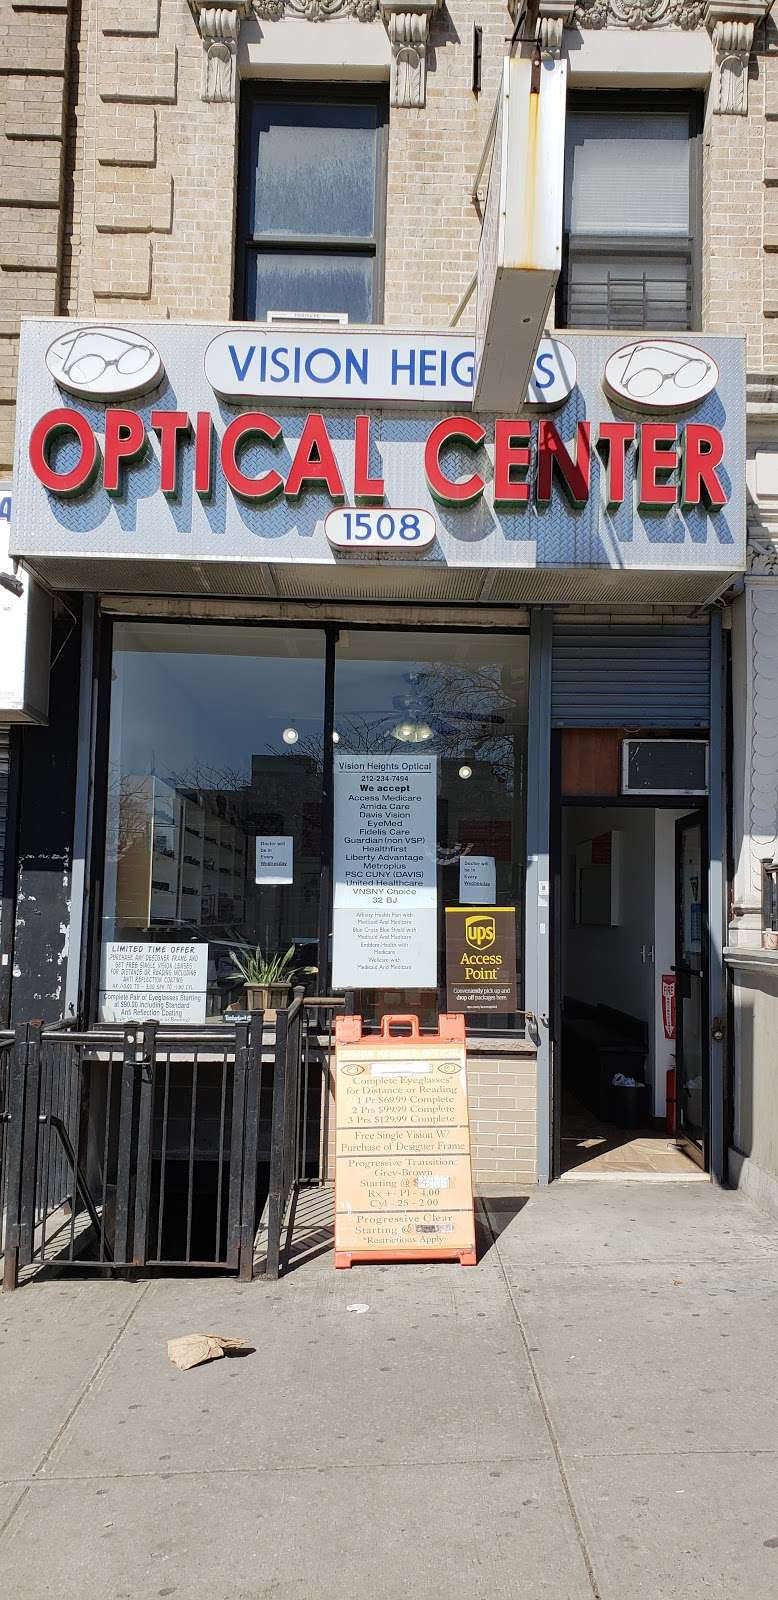 Vision Heights Optical - health  | Photo 6 of 10 | Address: 7401, 1508 Amsterdam Ave, New York, NY 10031, USA | Phone: (212) 234-7494